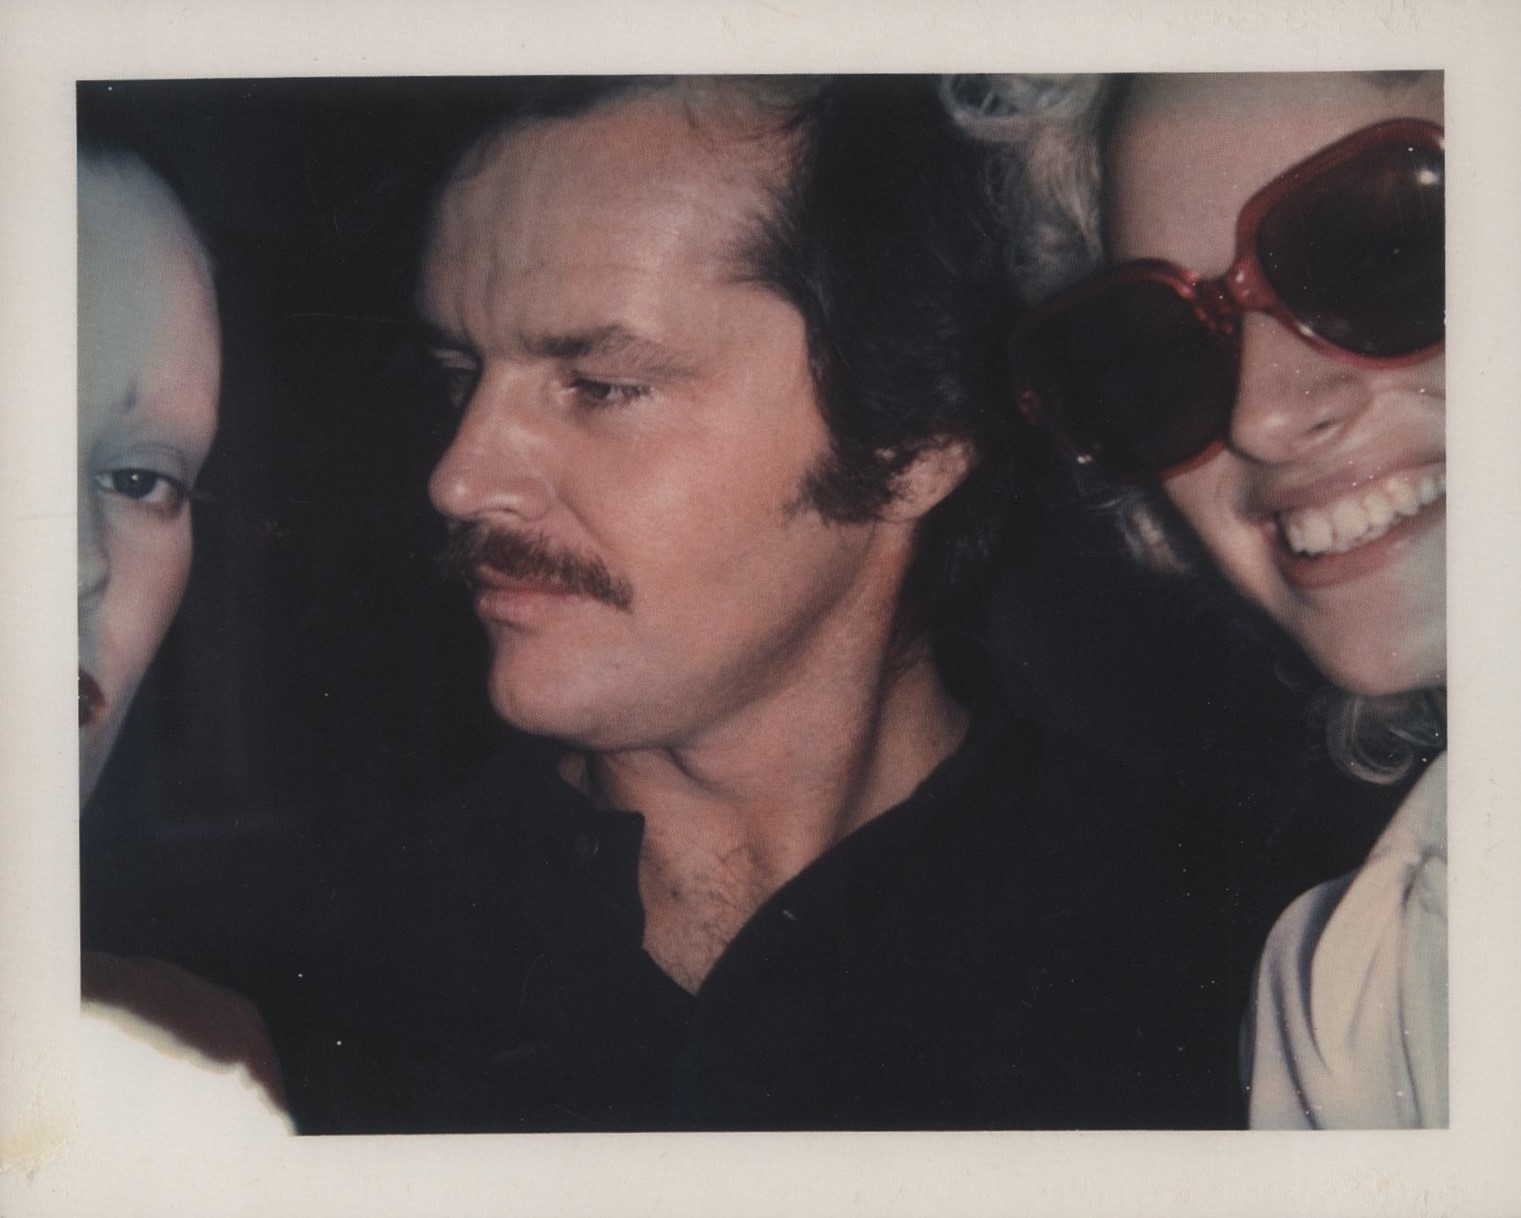 JANE FORTH, JACK NICHOLSON AND DONNA JORDAN 1970 POLAROID ANDY WARHOL